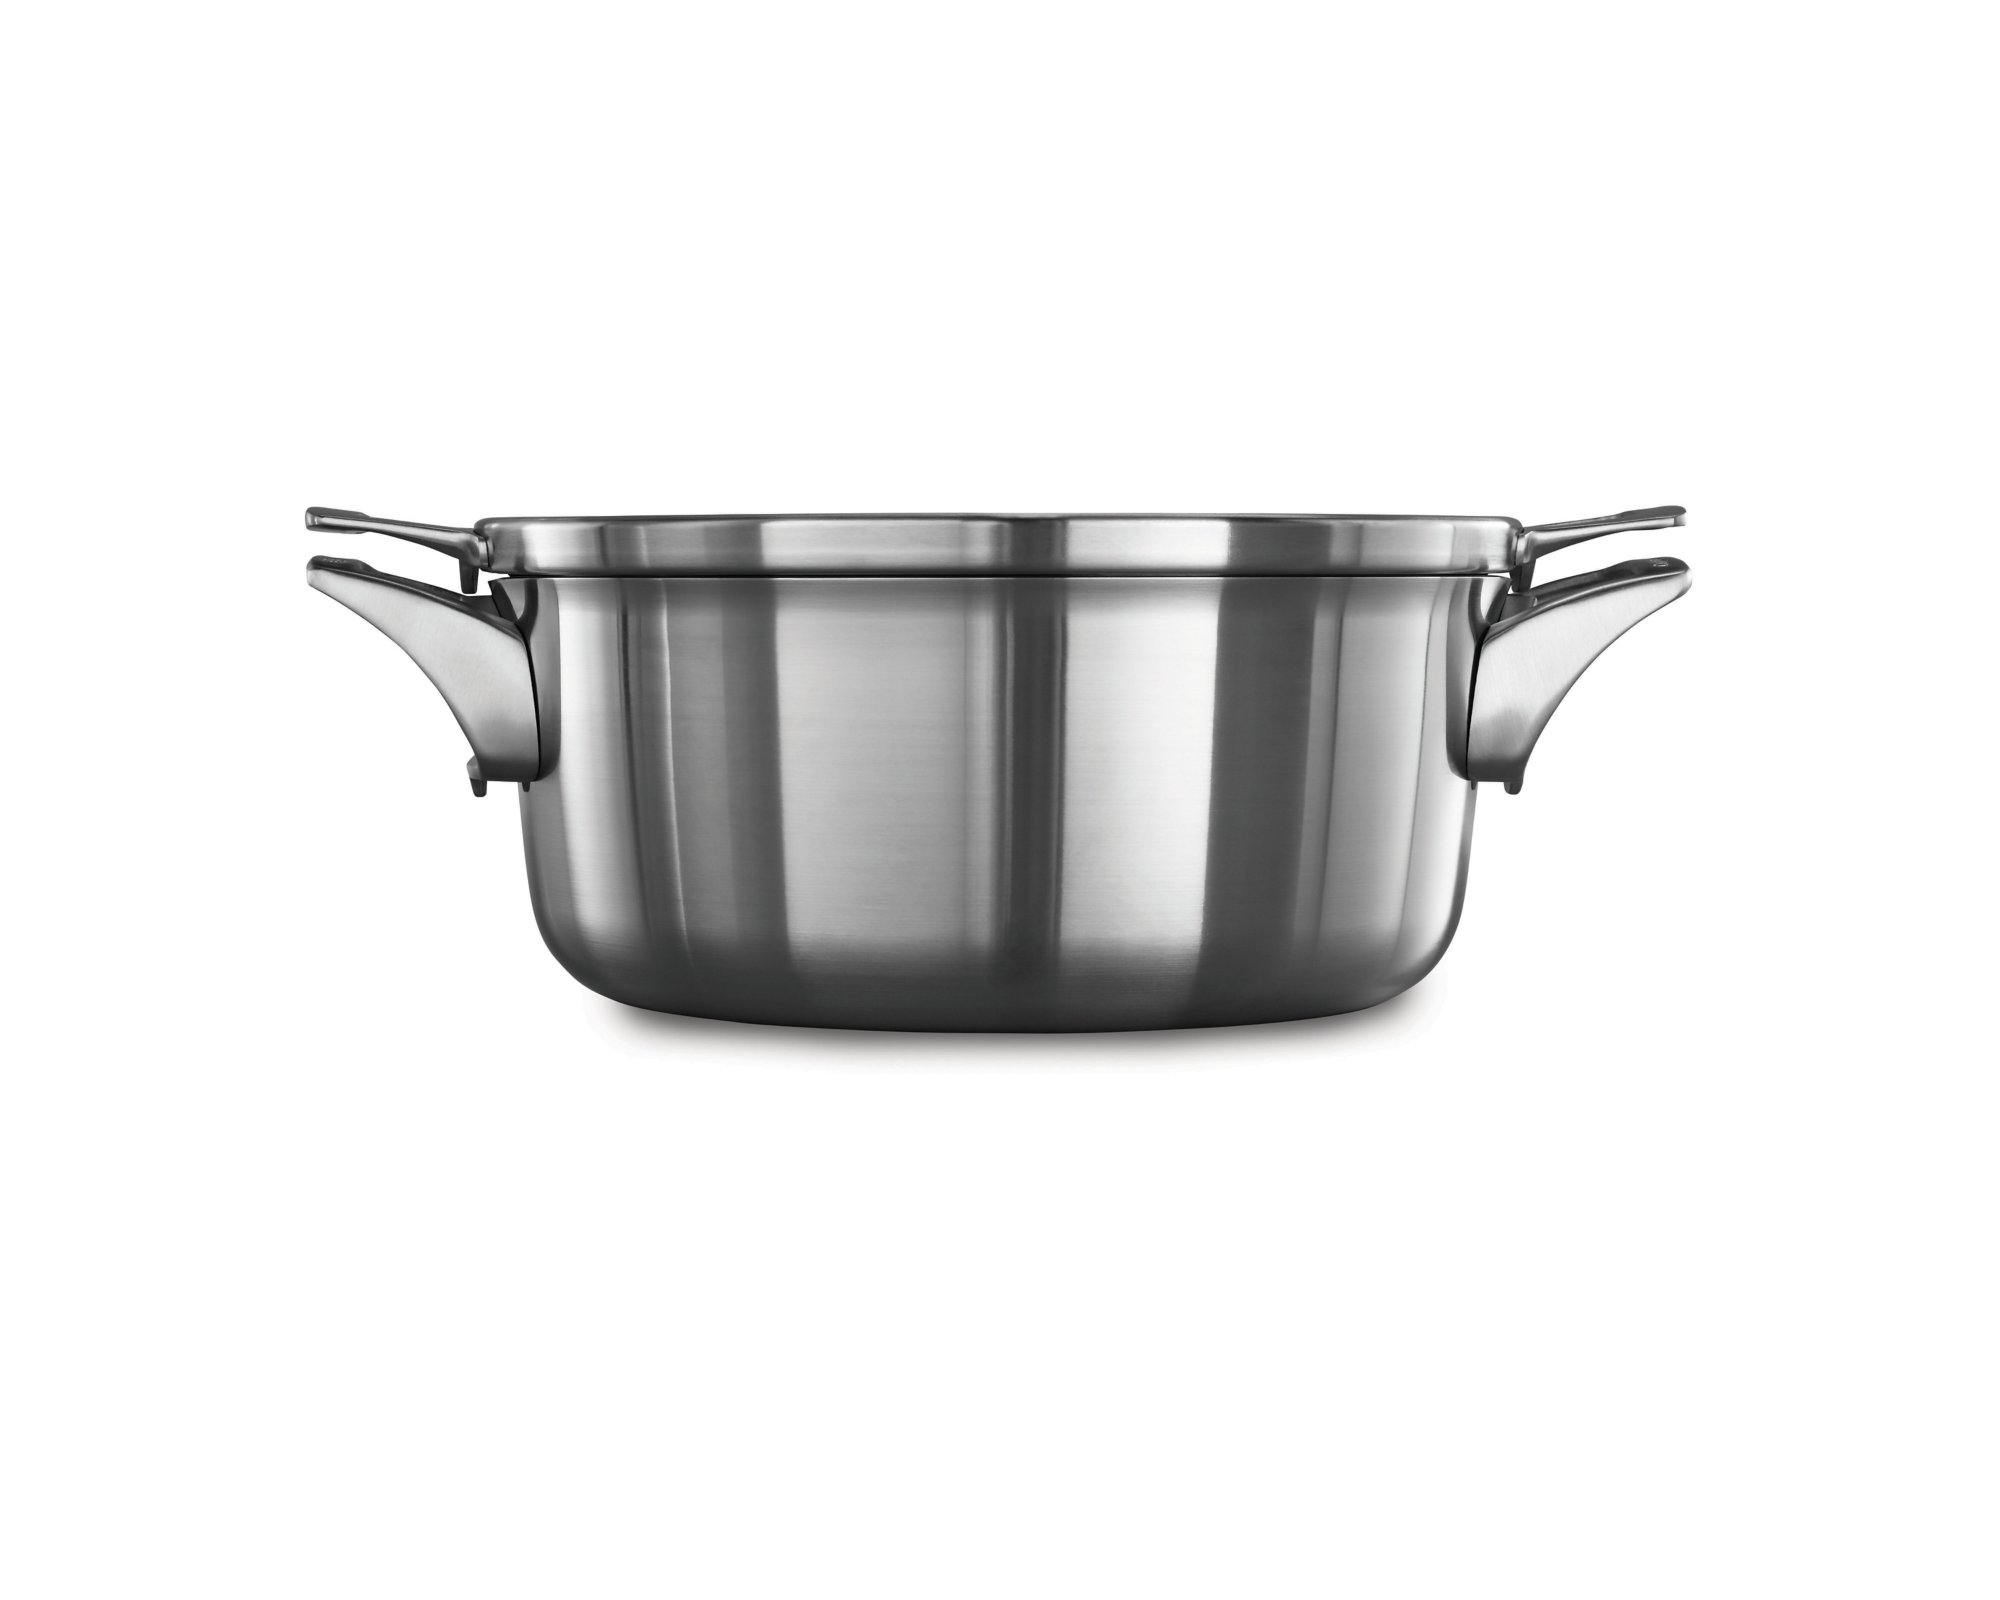 Calphalon Premier™ Space Saving Stainless Steel 5 qt. Dutch Oven with Cover